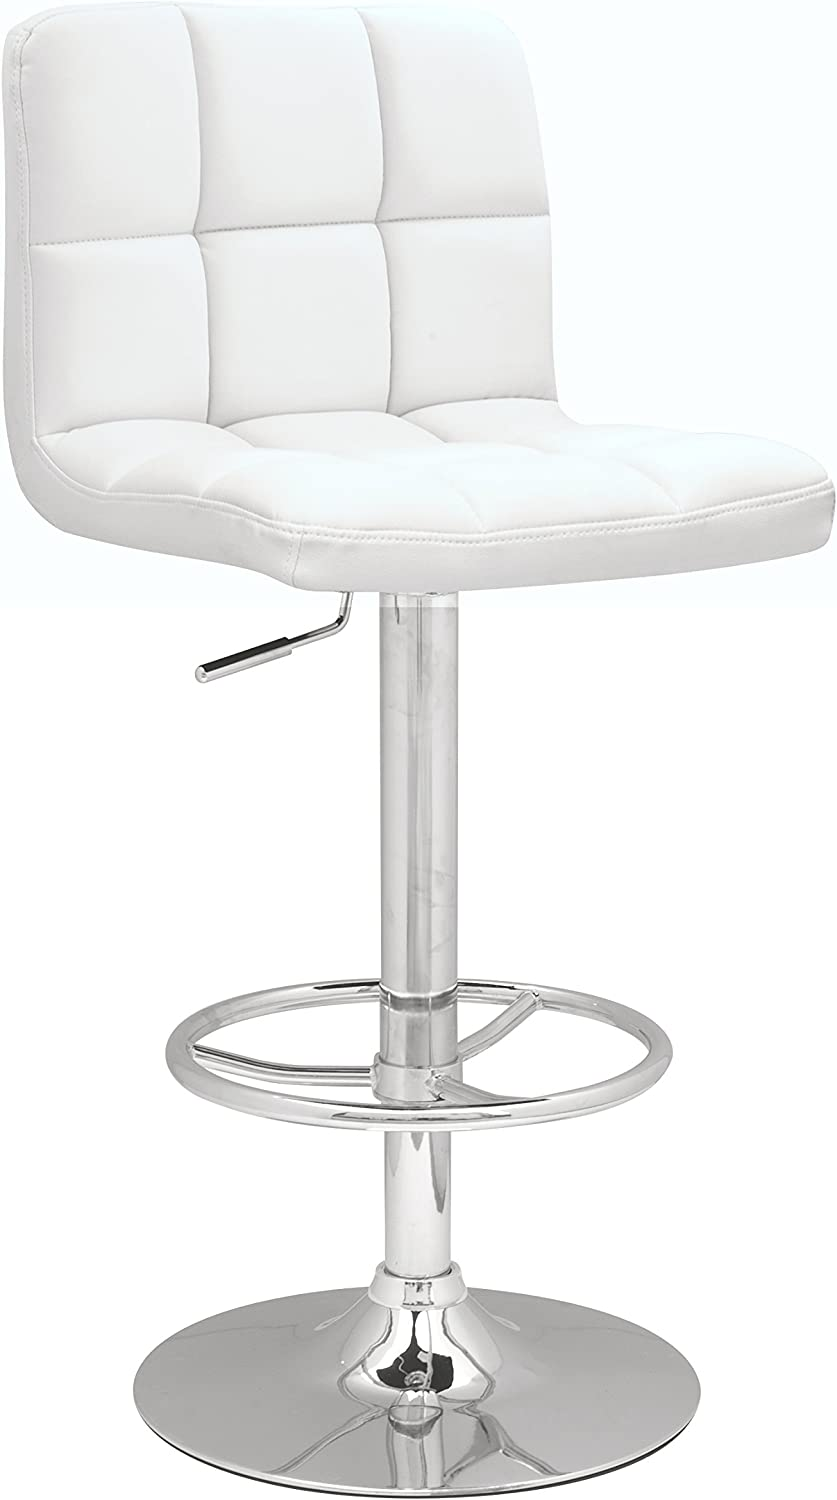 Milan WHT Meera Pneumatic Swivel Stool White